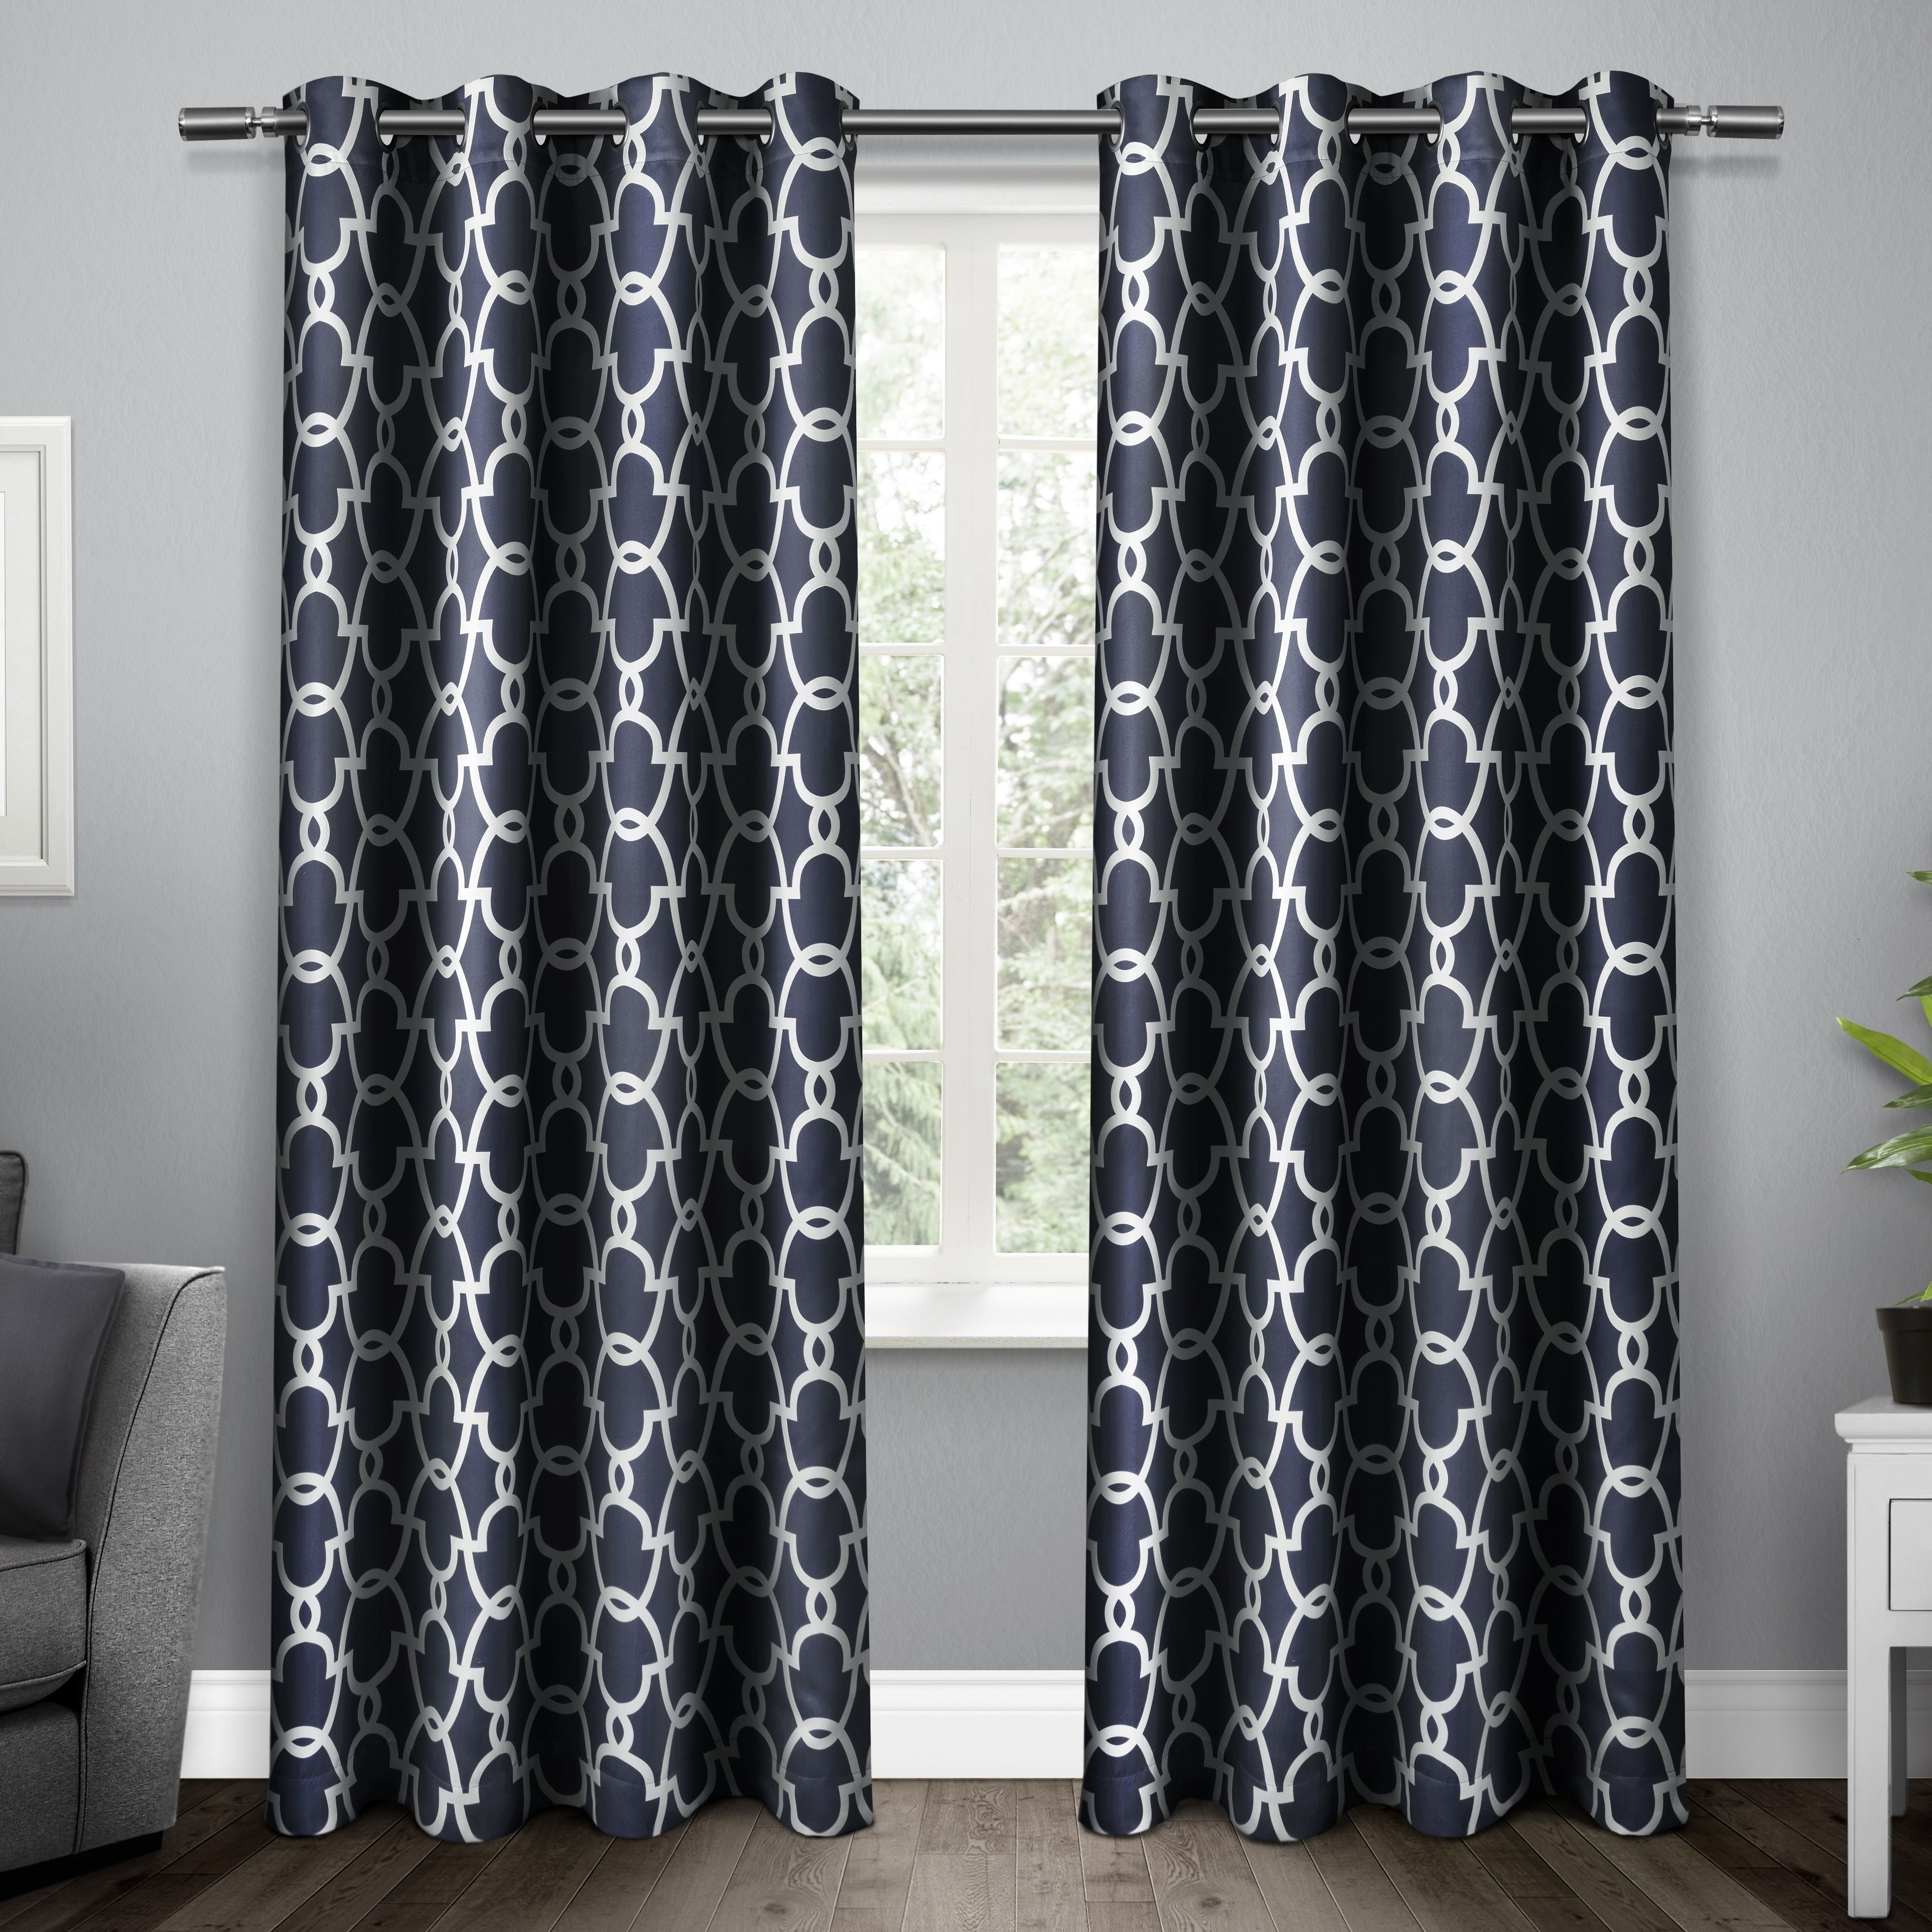 Ati home gates blackout thermal curtain panel pair with grommet top